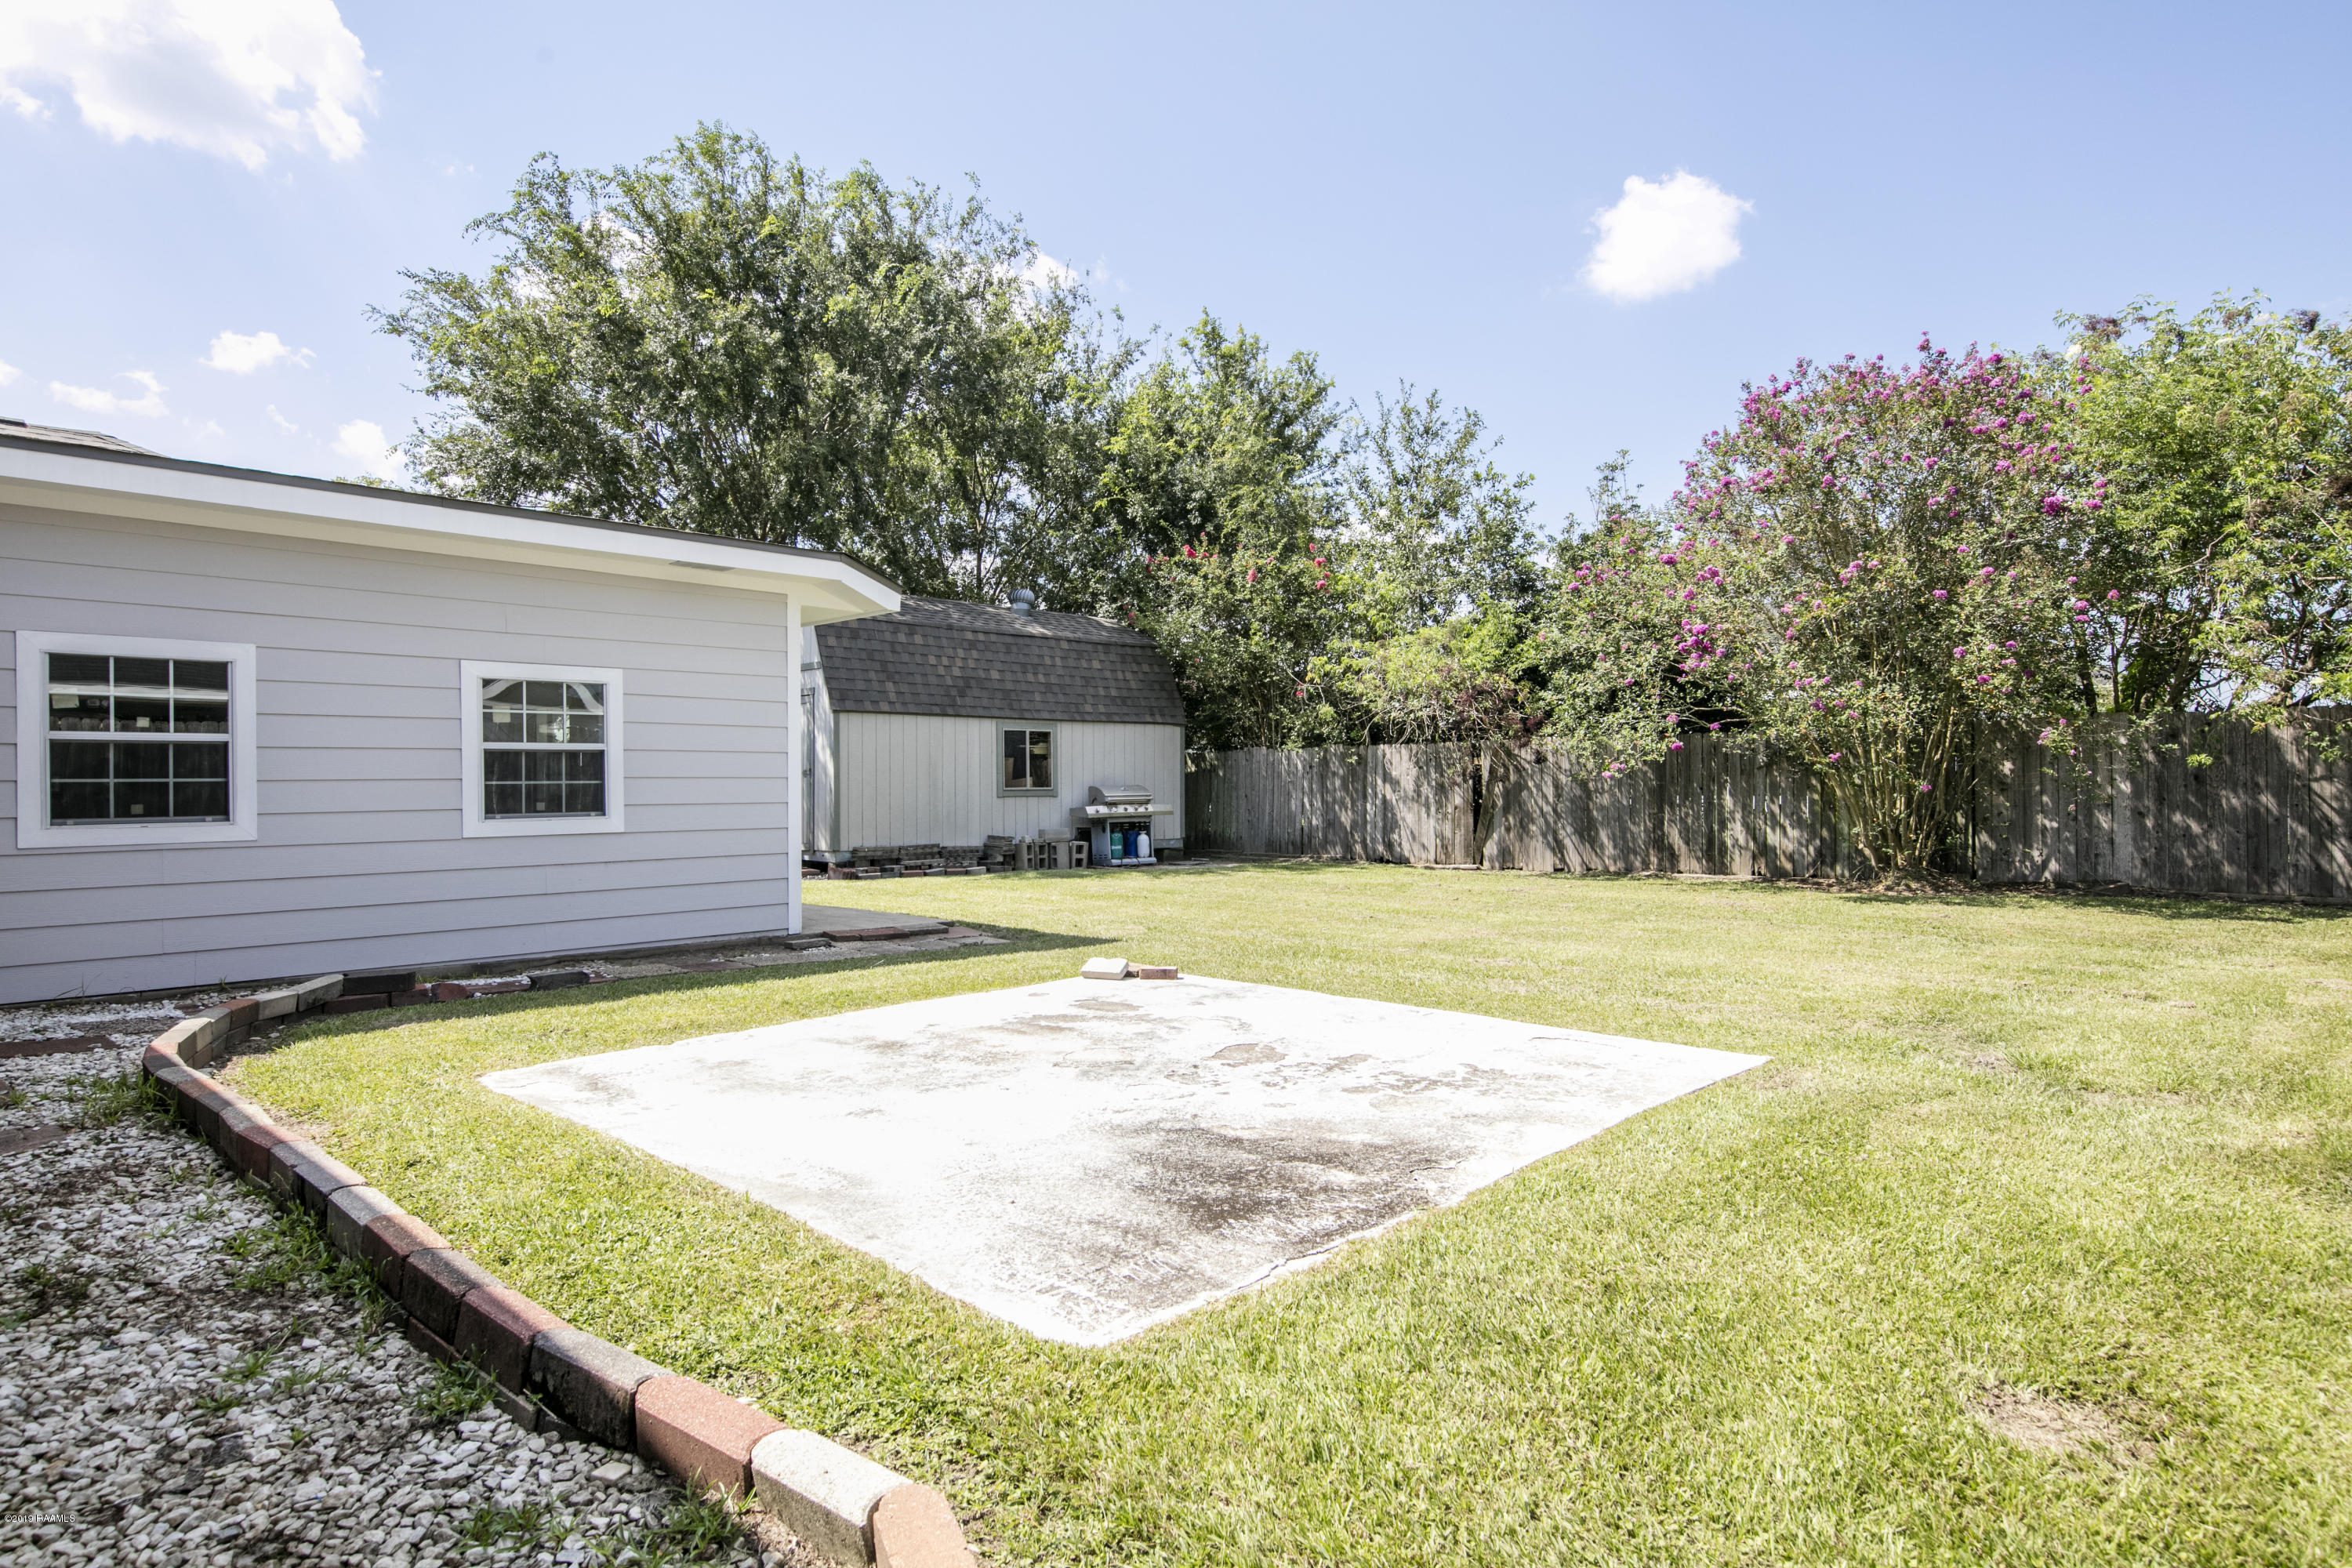 217 Sundown Drive, Broussard, LA 70518 Photo #18